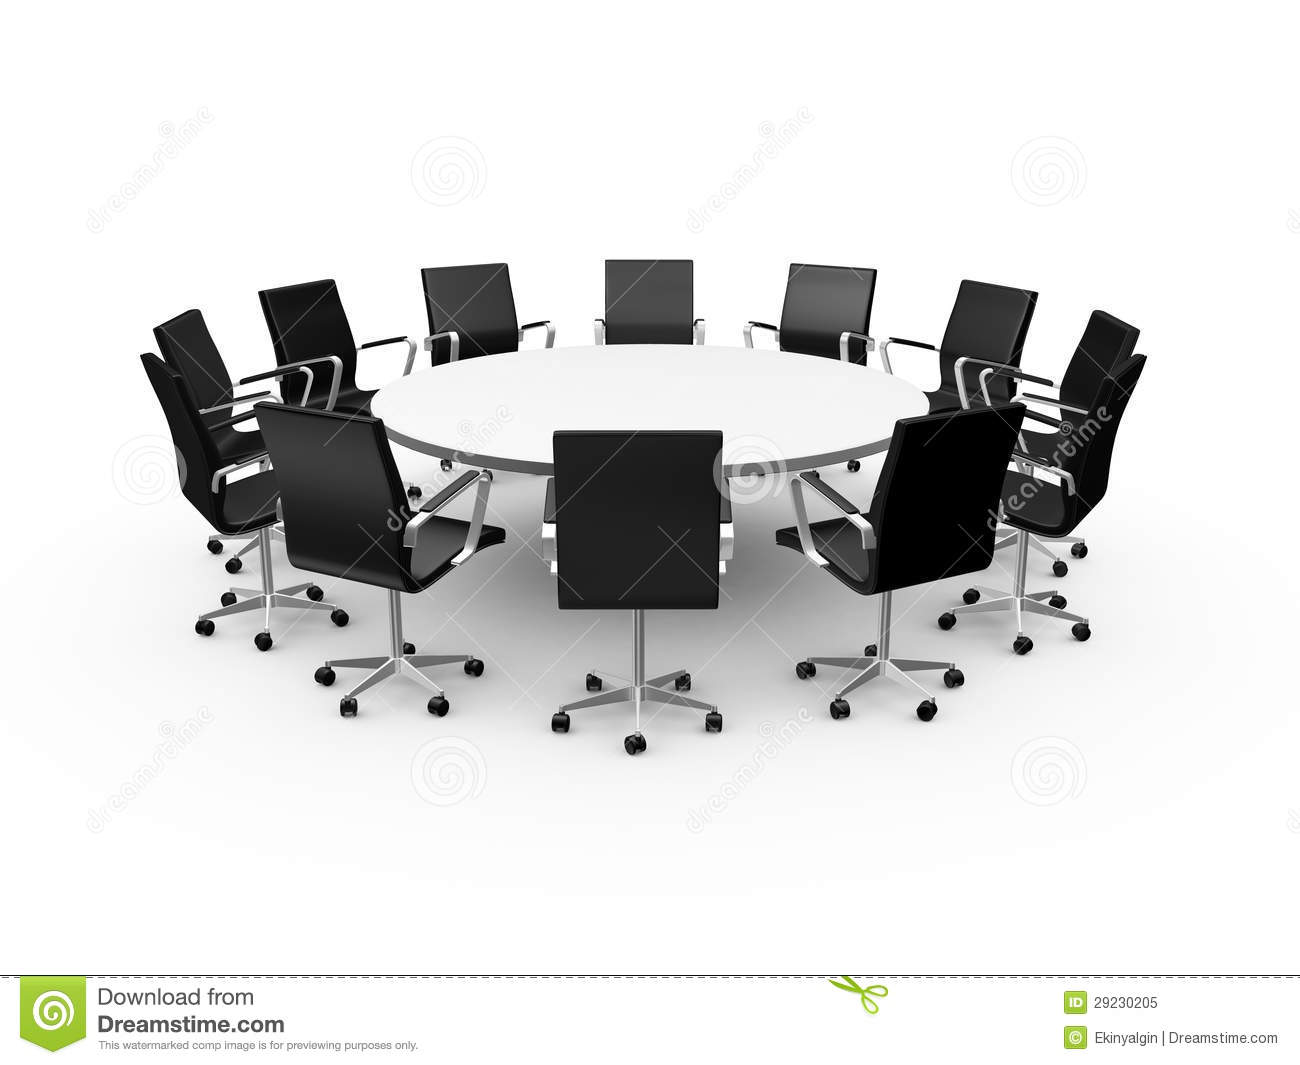 Clip Art Conference Room Set Up Diagrams DIY Enthusiasts Wiring - Conference room table set